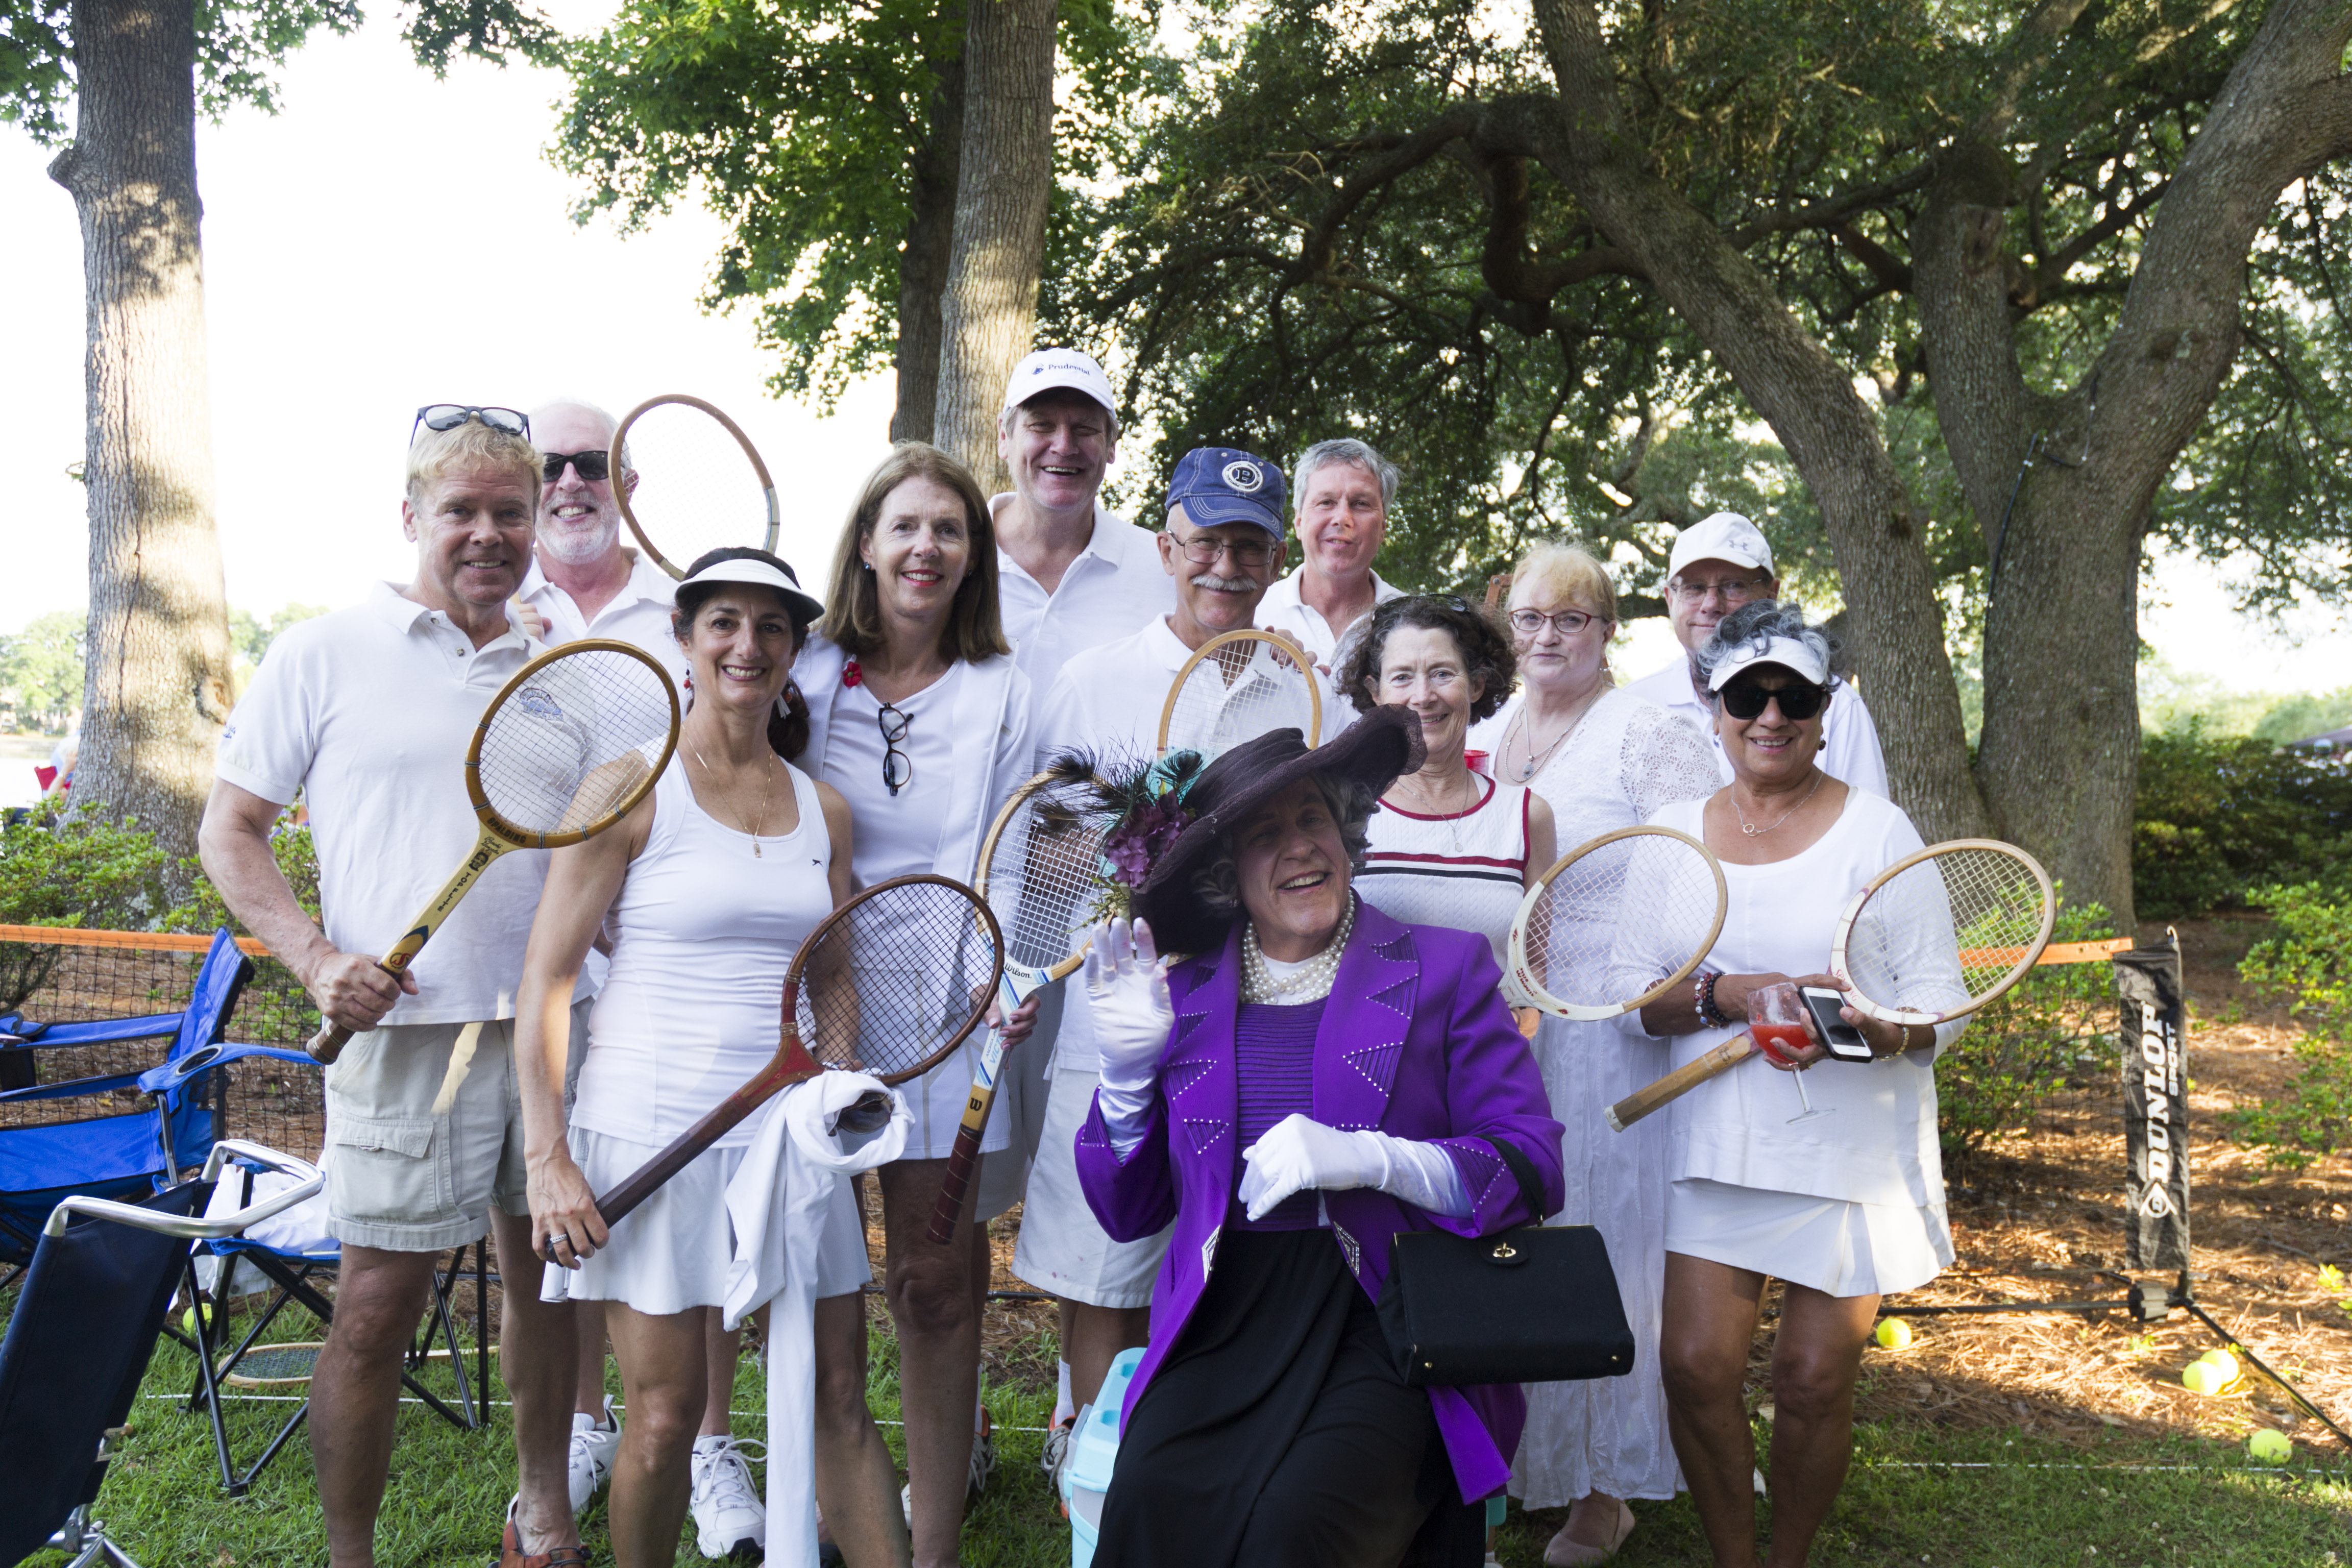 """Fit for a queen! The """"Wimbledon"""" picnic group included a member of the British royal family!"""